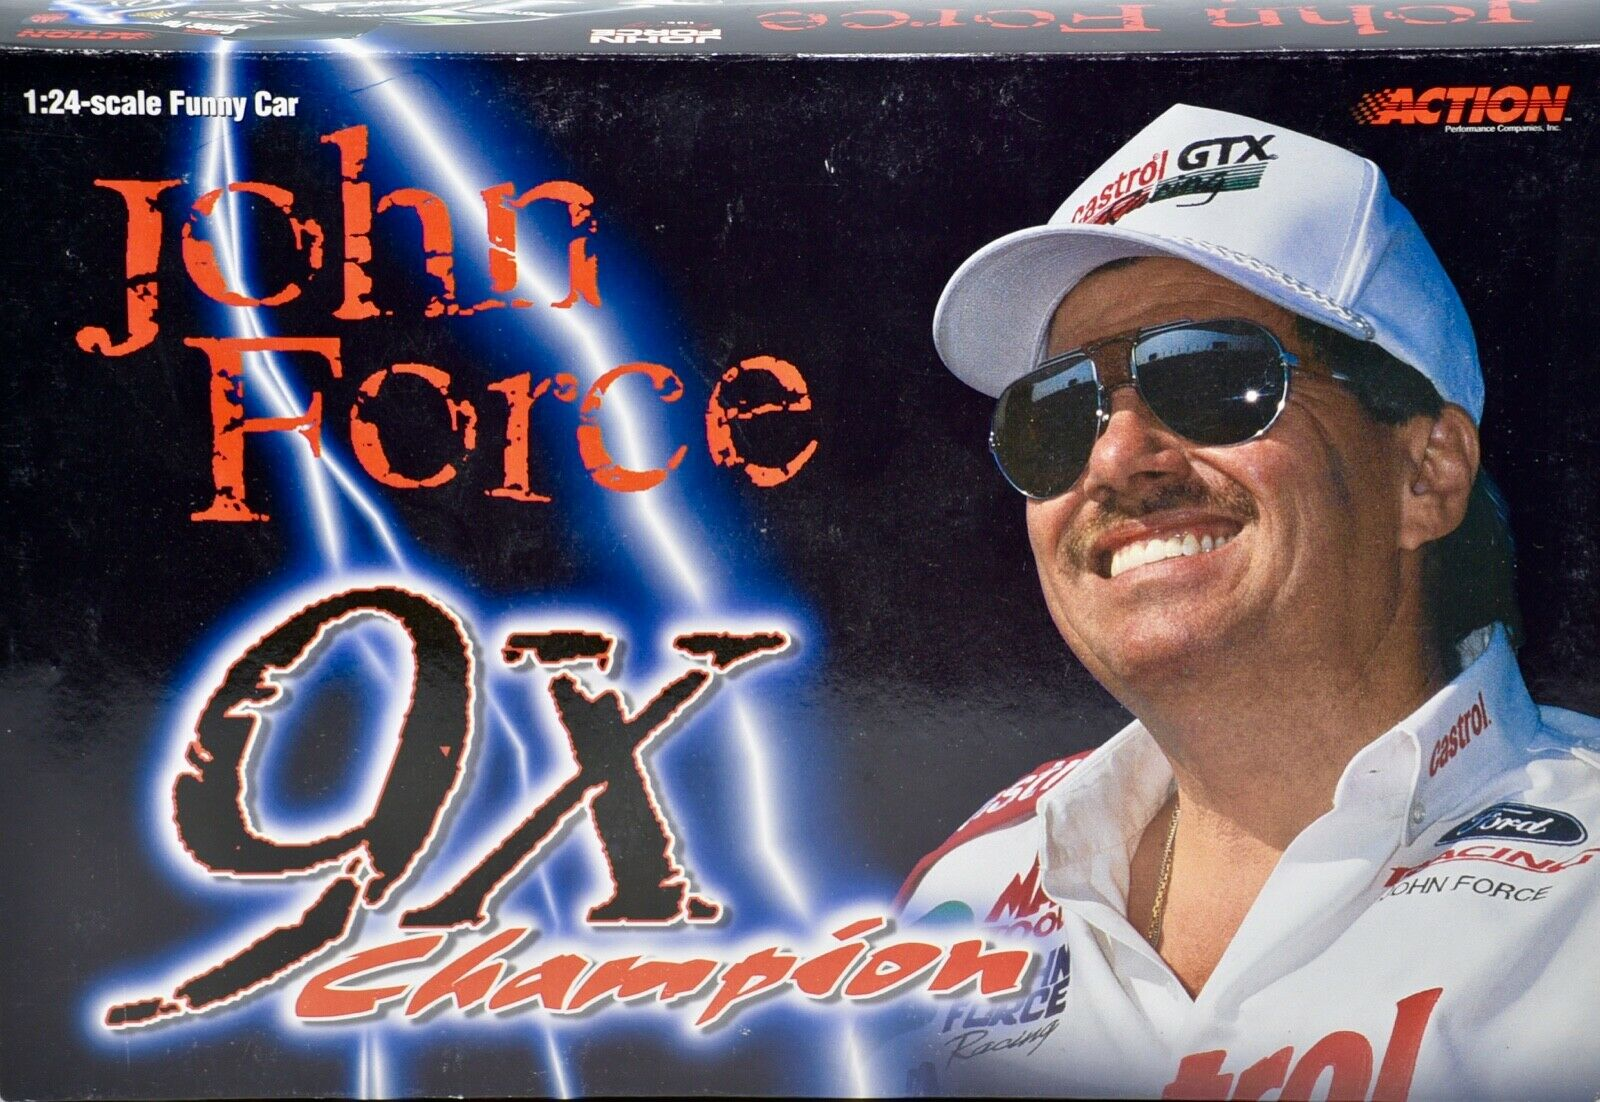 2000 Action     NHRA John Force Castrol GTX   9X Champion Funny Car -1 24 Scale b16e10